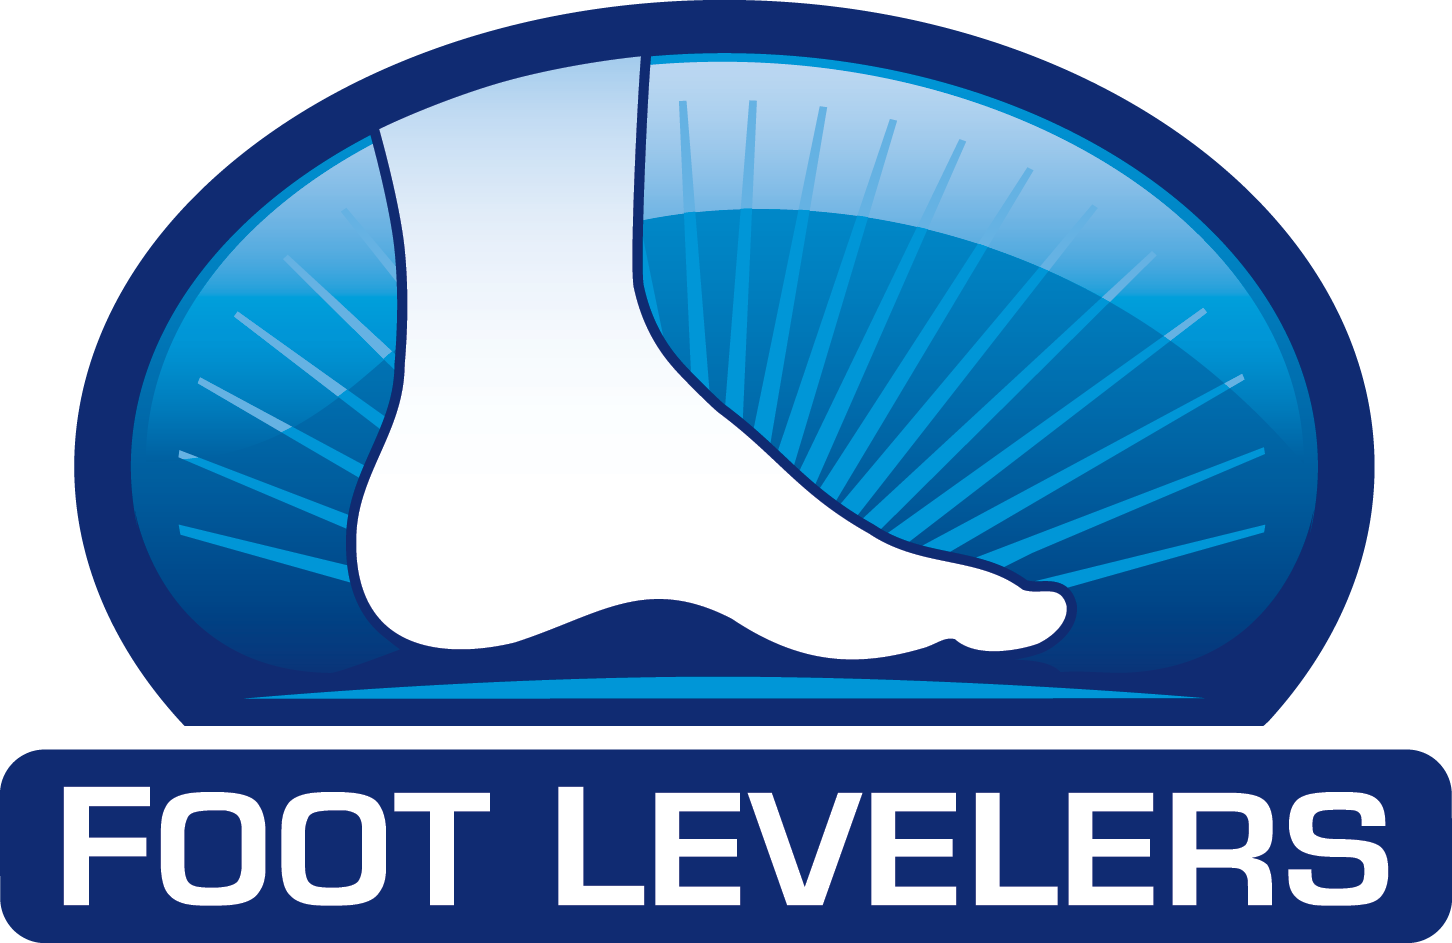 the wfc competition is proudly sponsored by footlevelers